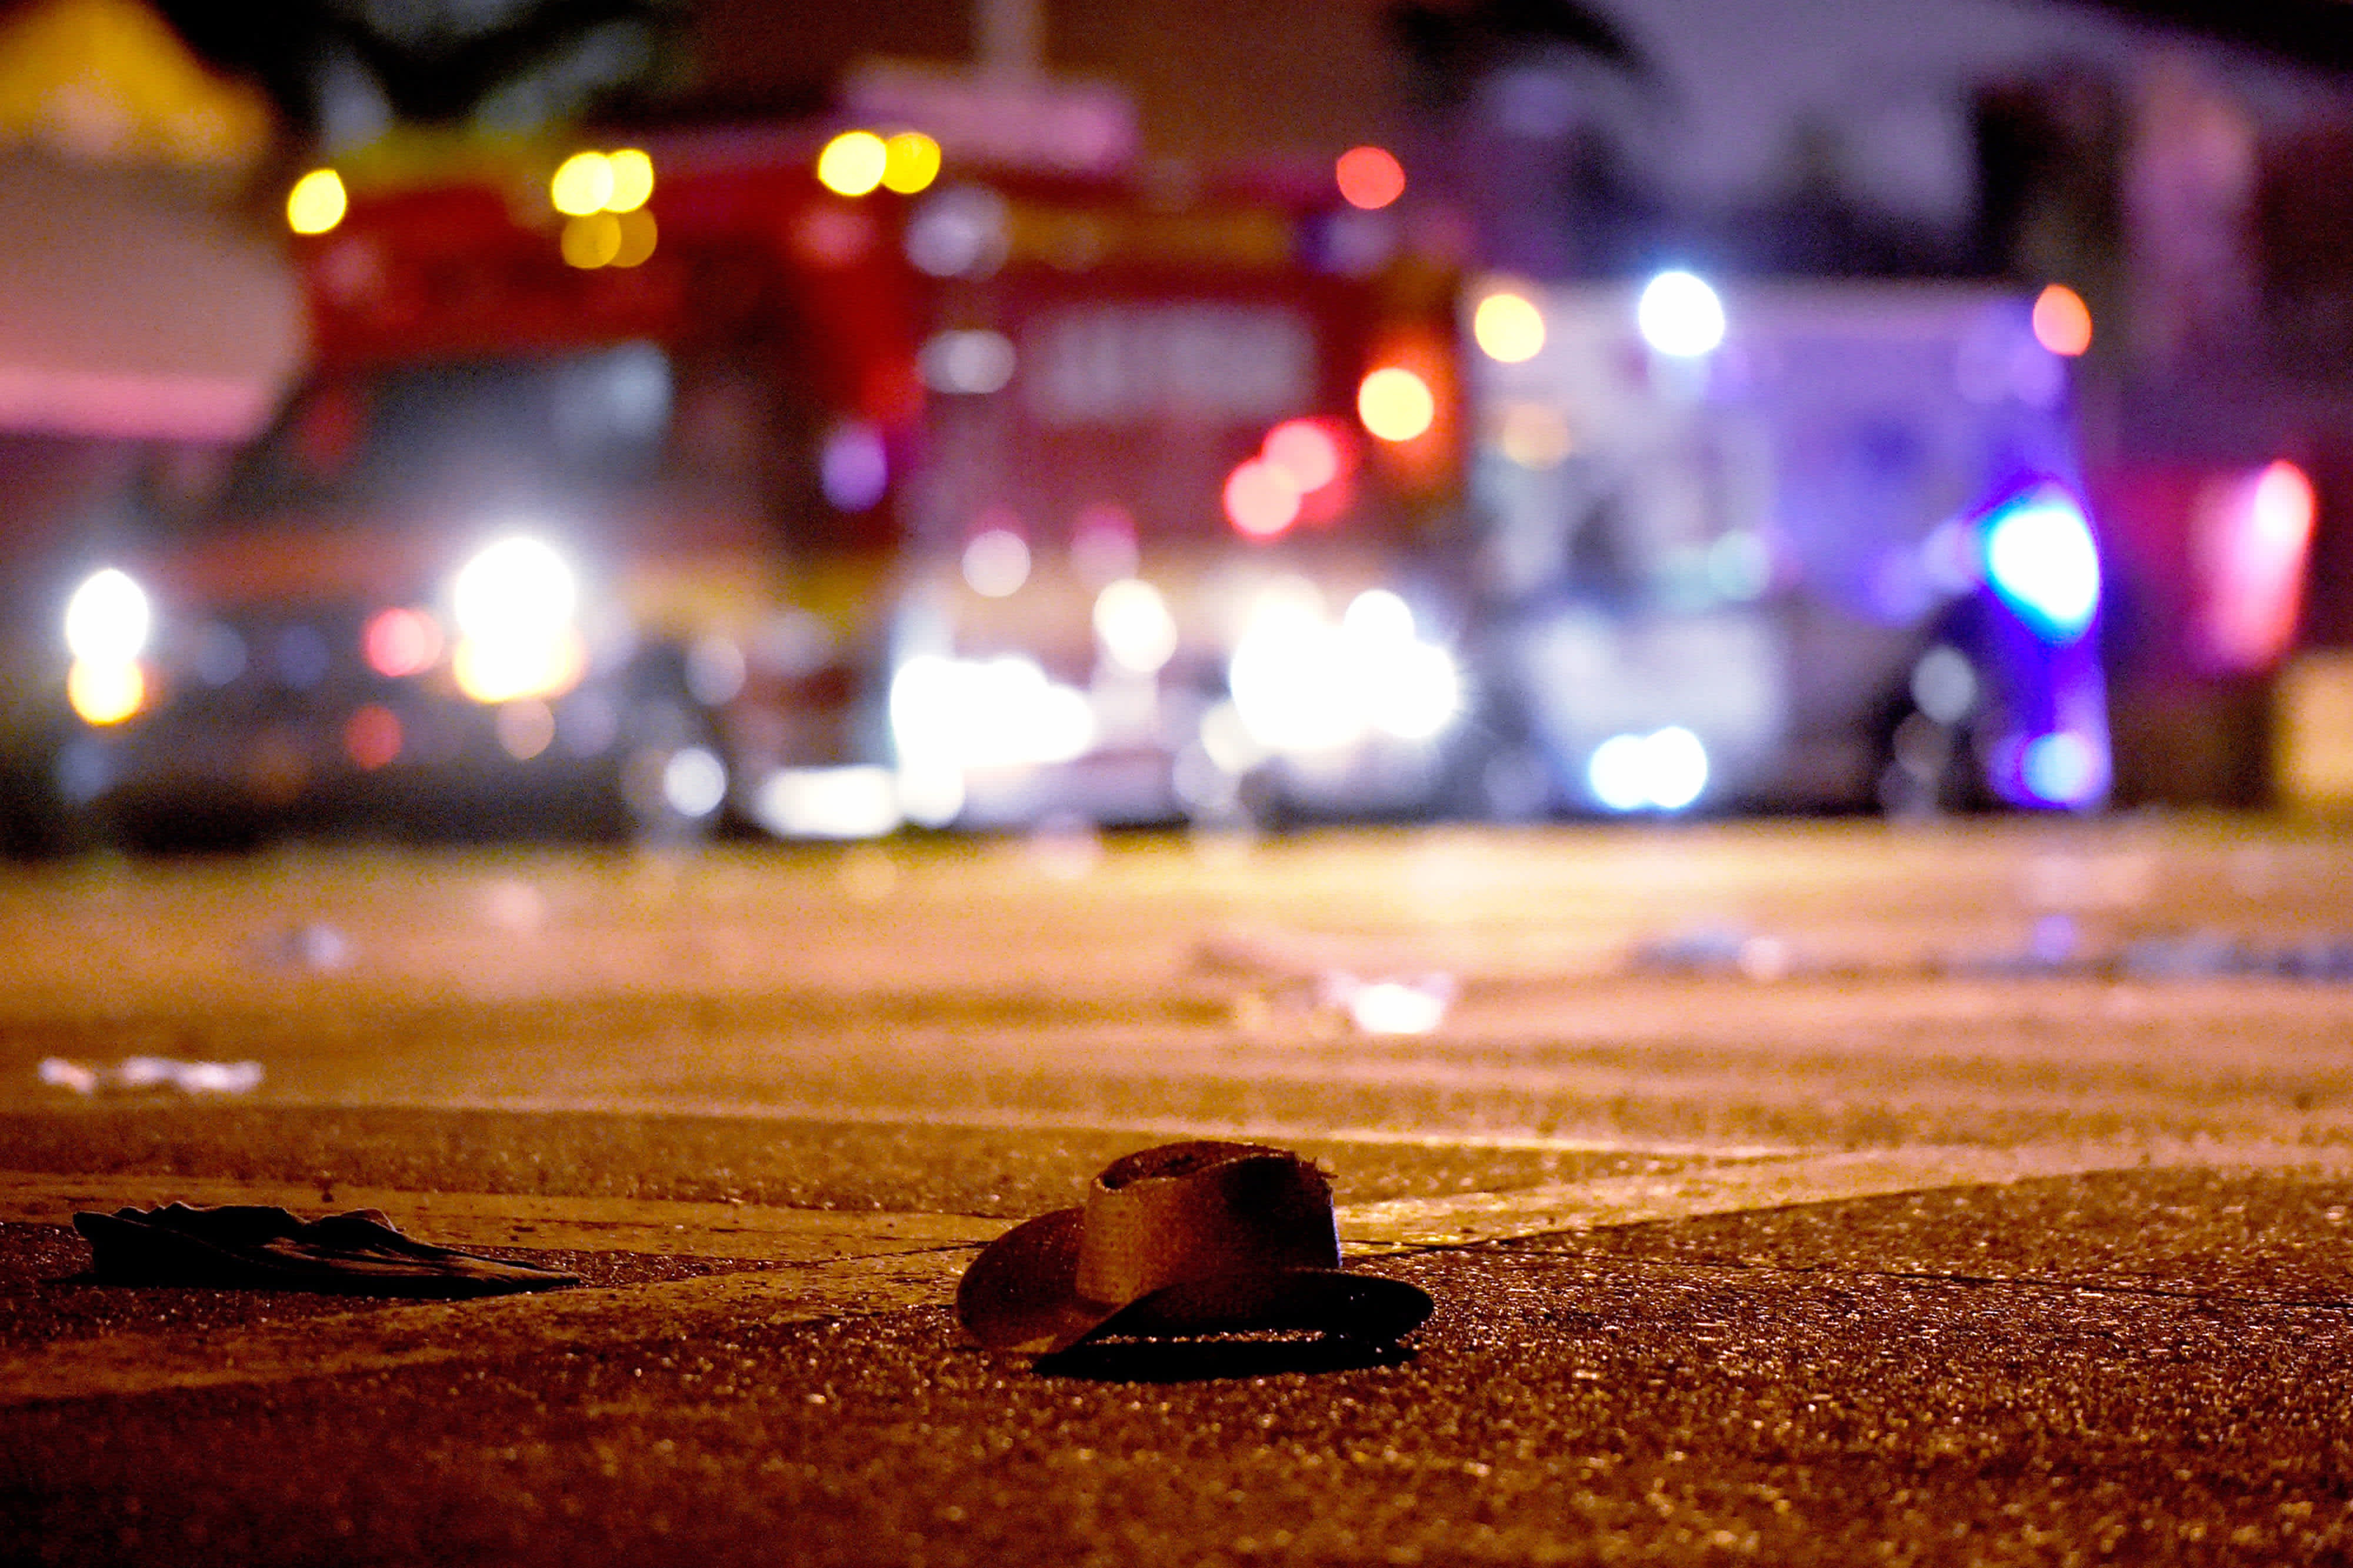 A cowboy hat lays in the street after shots were fired near a country music festival in Las Vegas (DAVID BECKER / GETTY IMAGES / AFP)